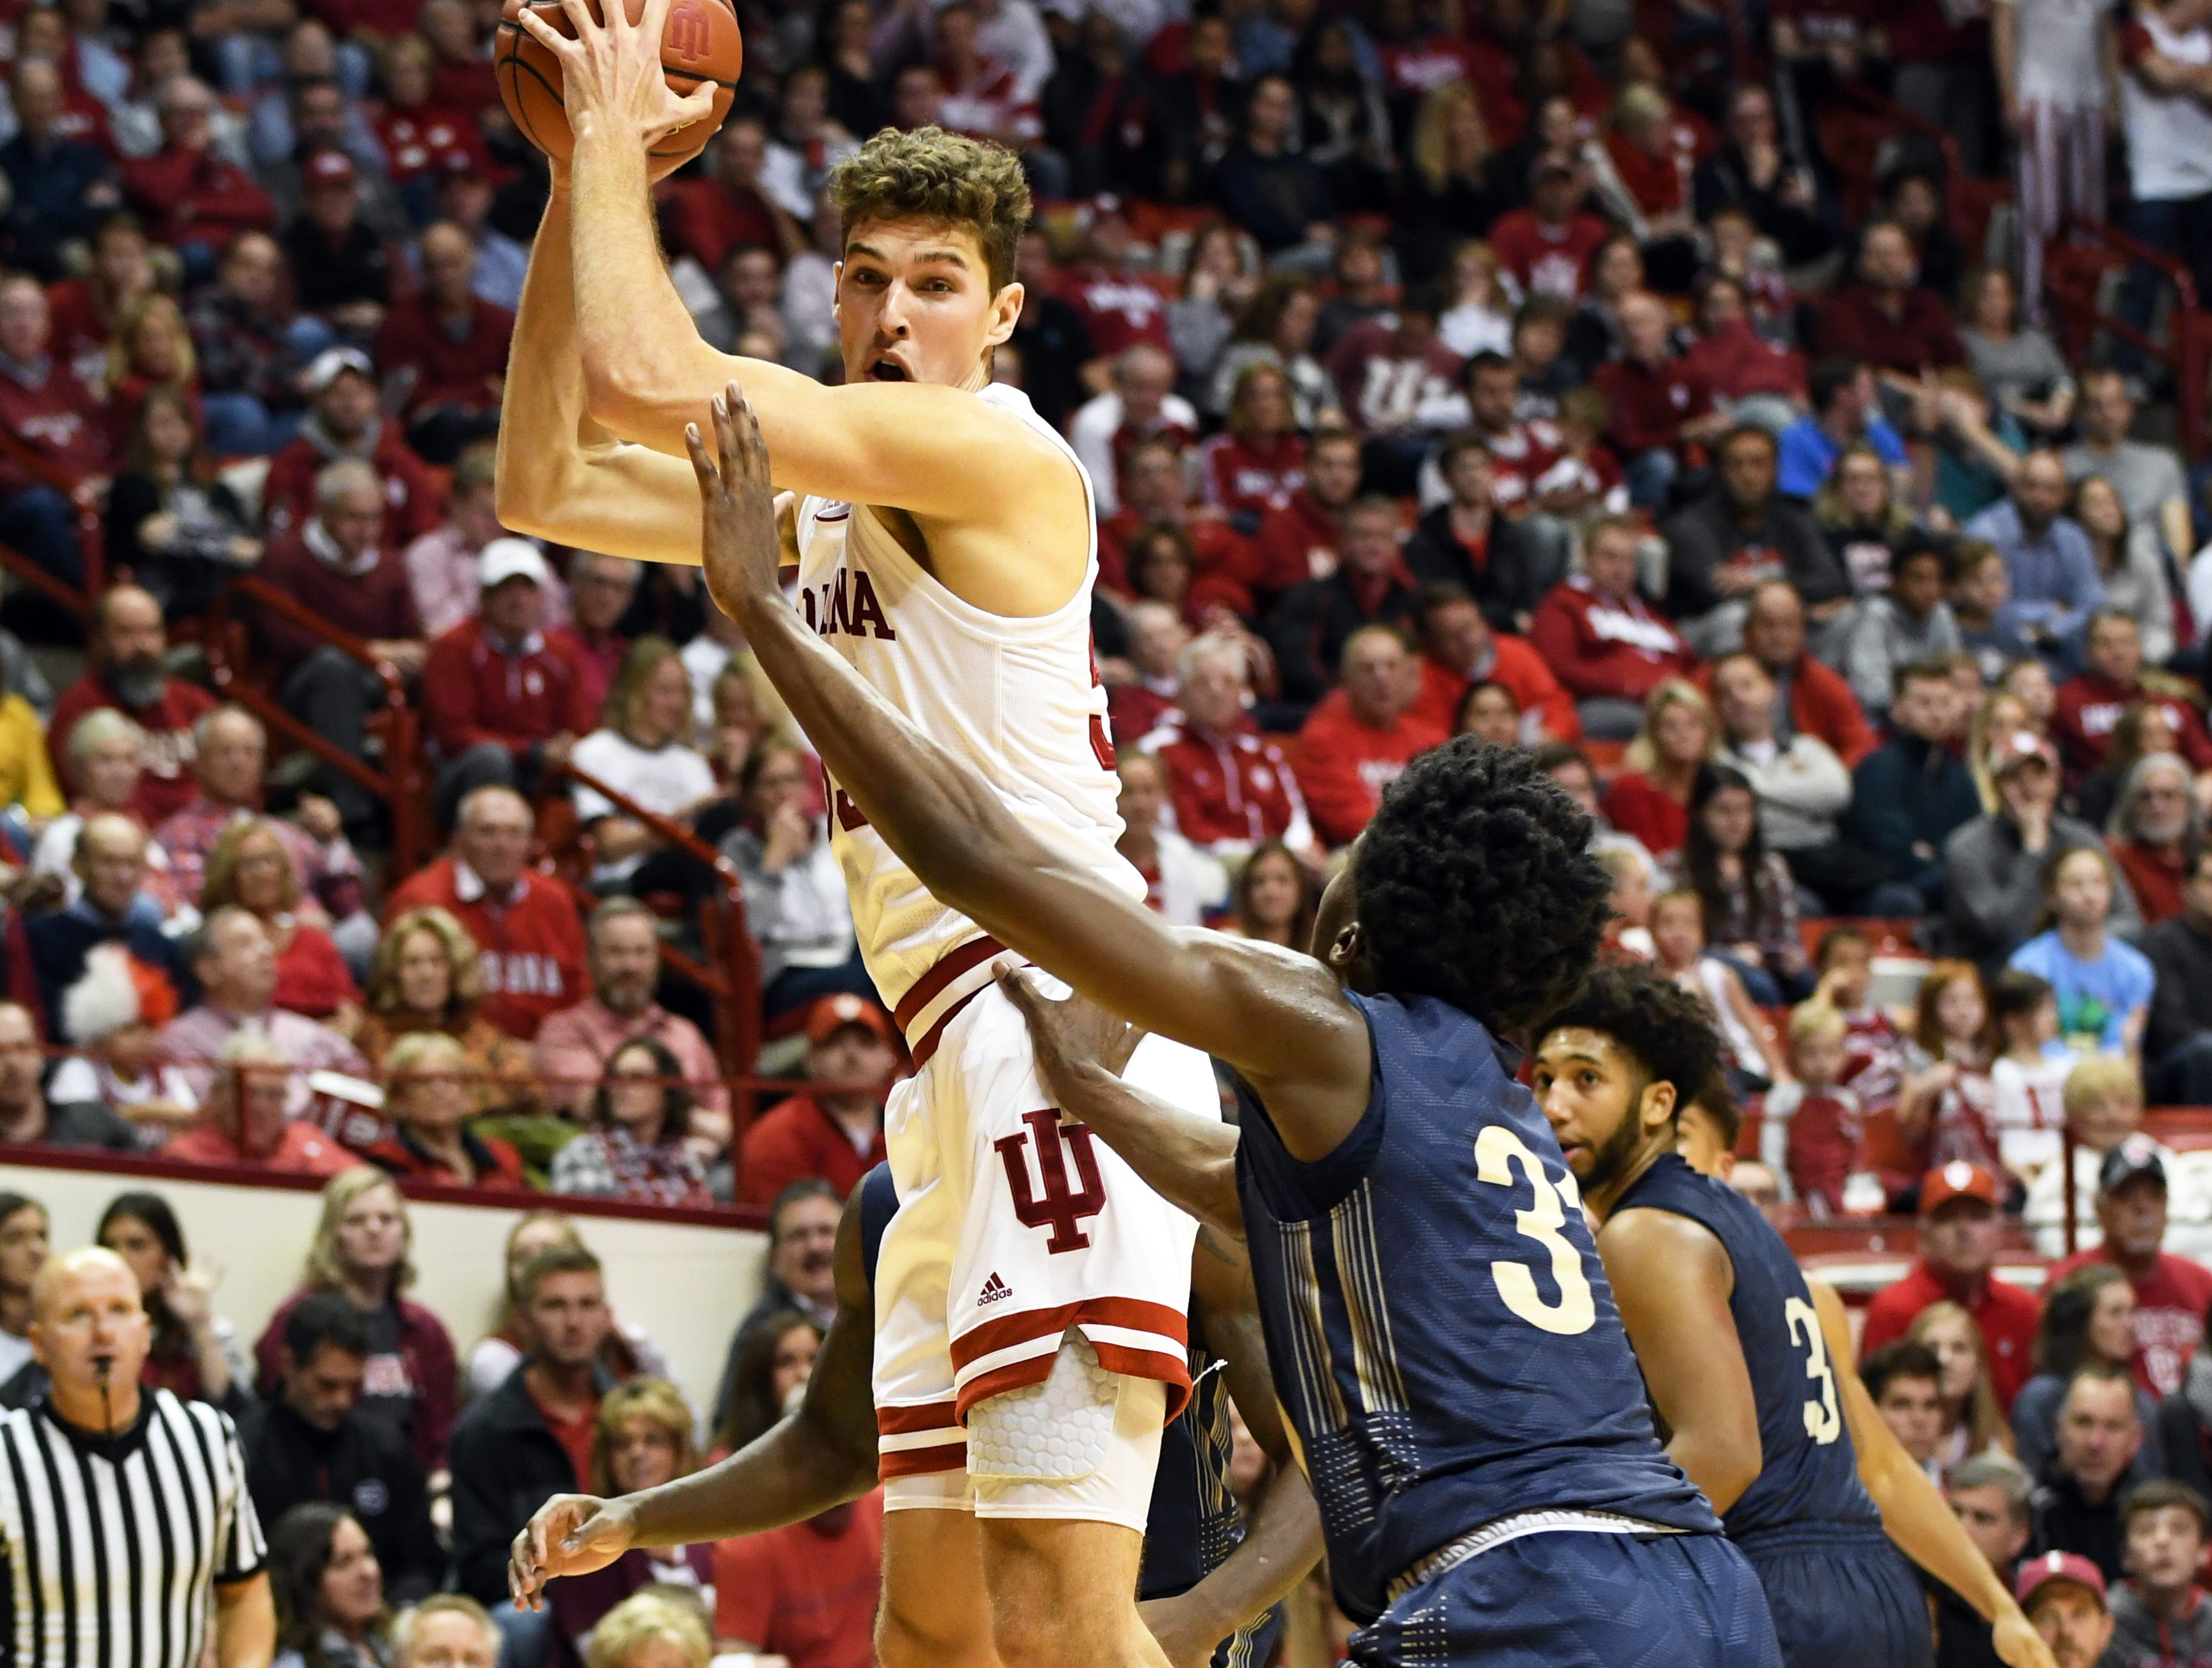 Indiana Hoosiers forward Evan Fitzner (55) catches a pass during the game against Montana State at Simon Skjodt Assembly Hall in Bloomington, Ind., on Friday, Nov. 9, 2018.